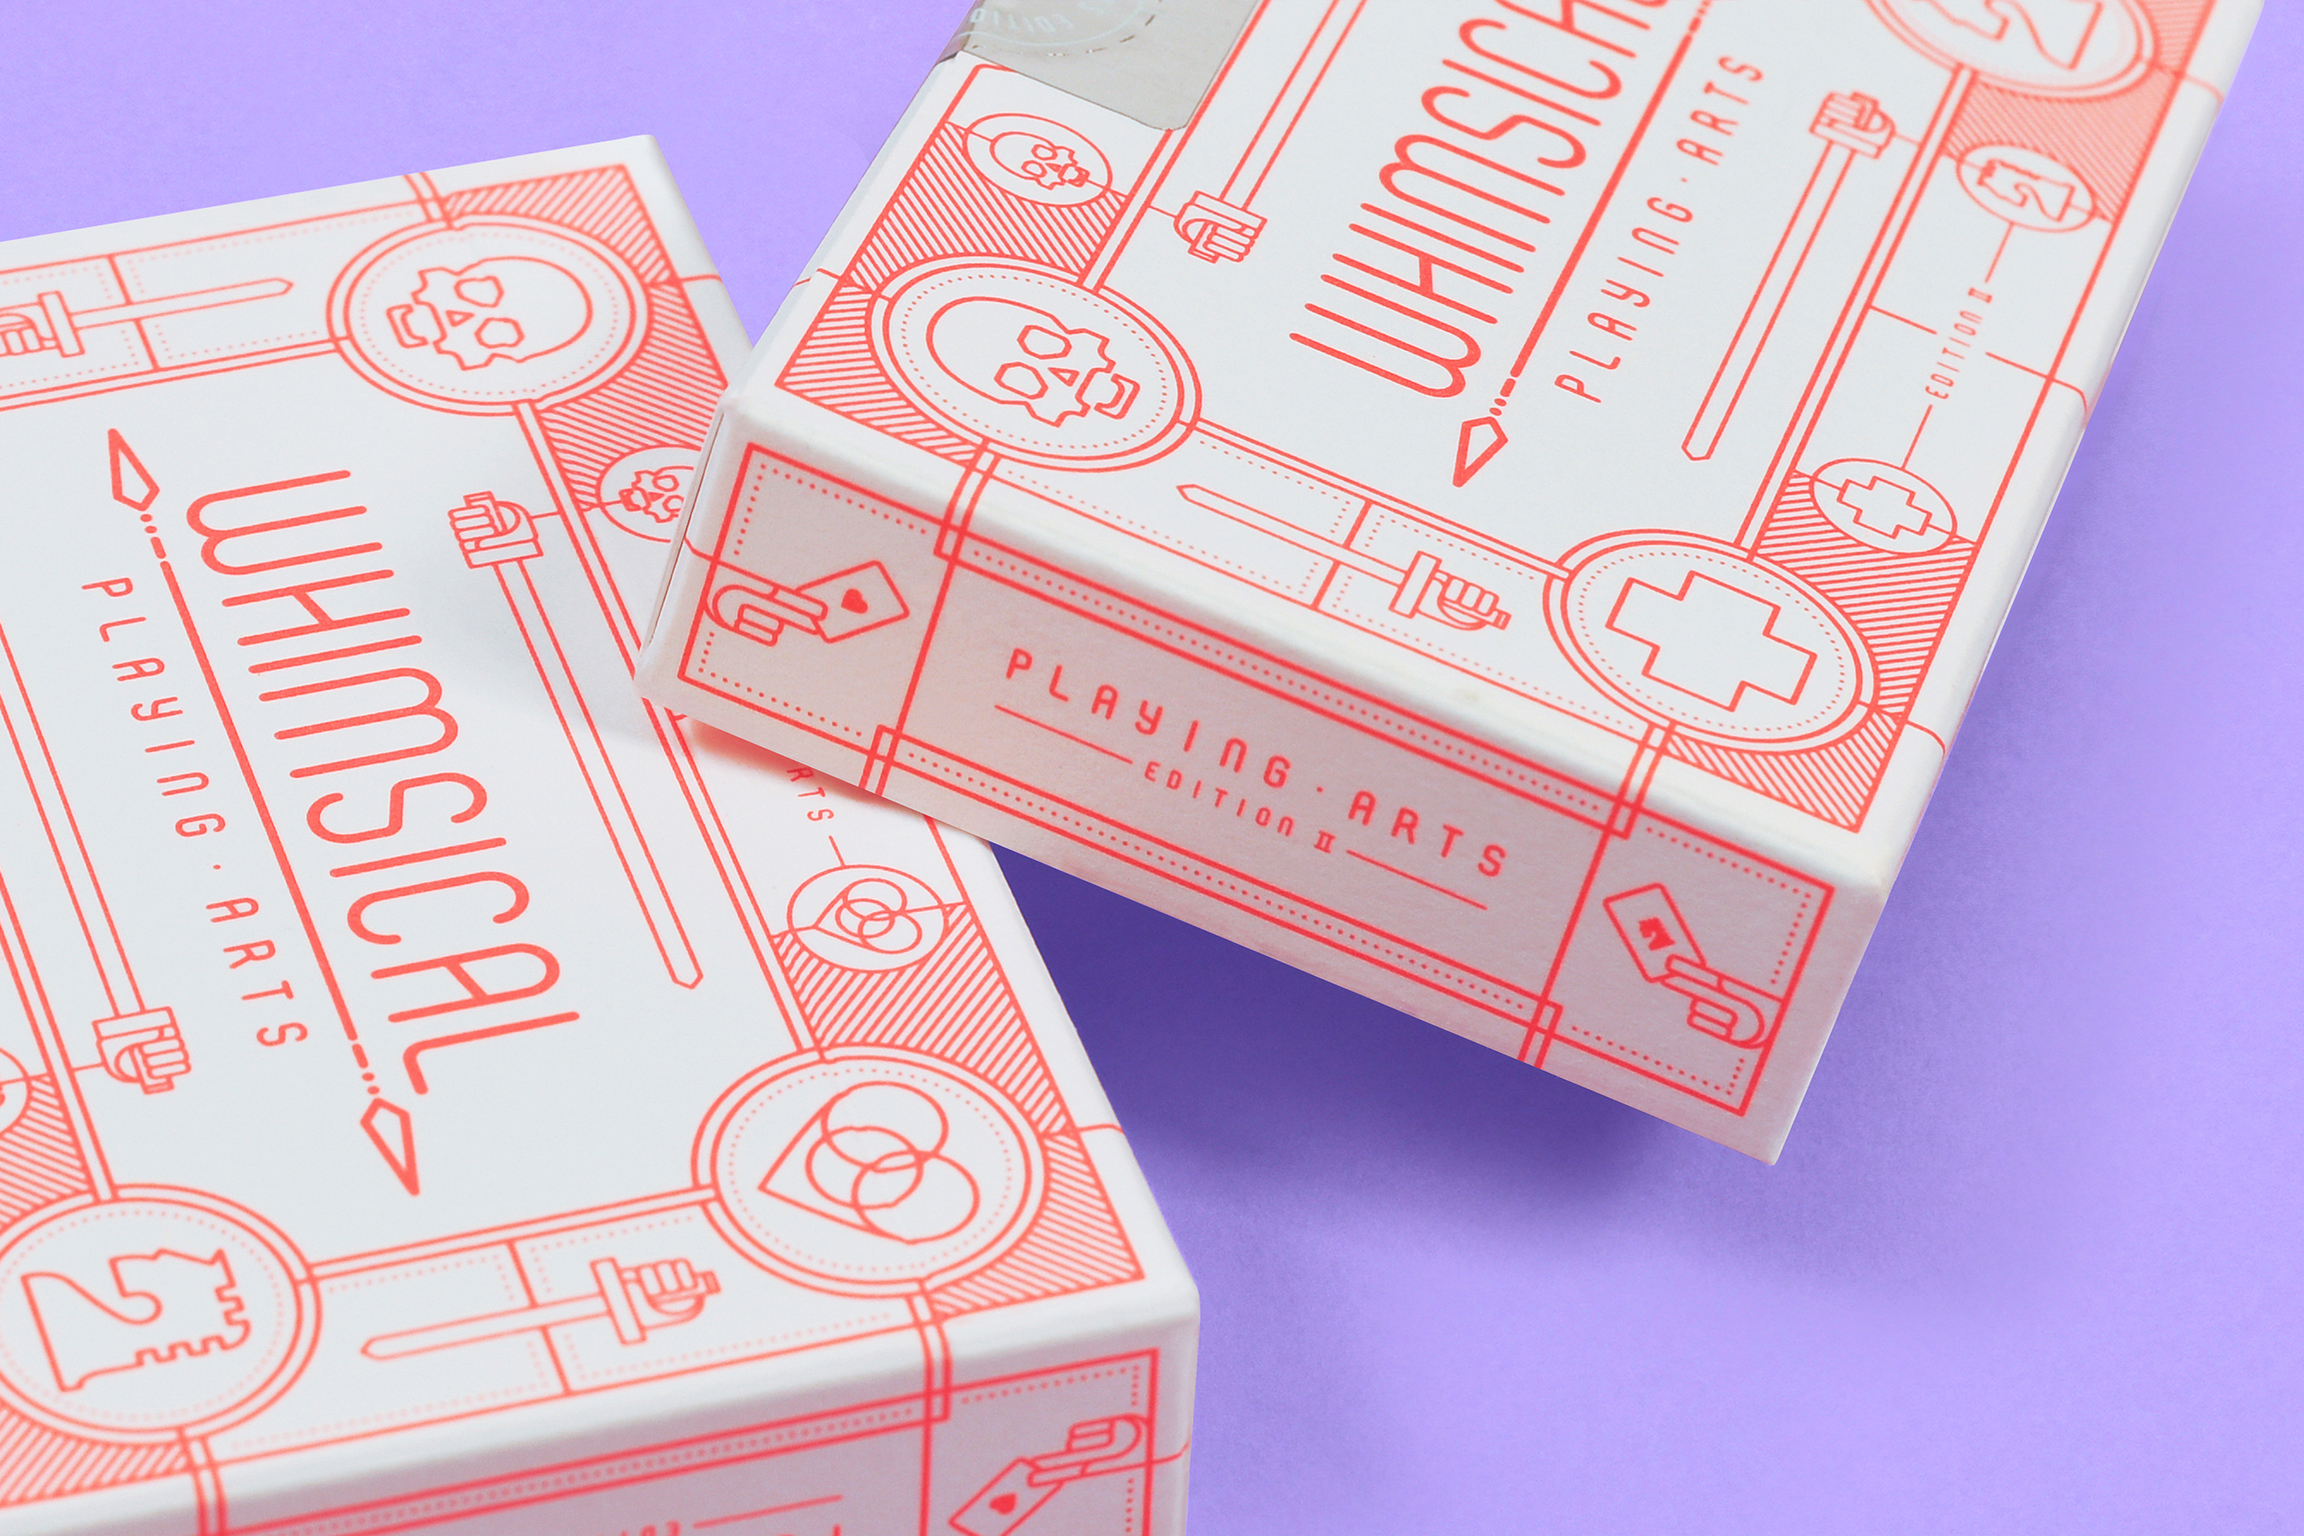 Whimsical Playing Arts with Minimalist and Eye-Catching Packaging Design